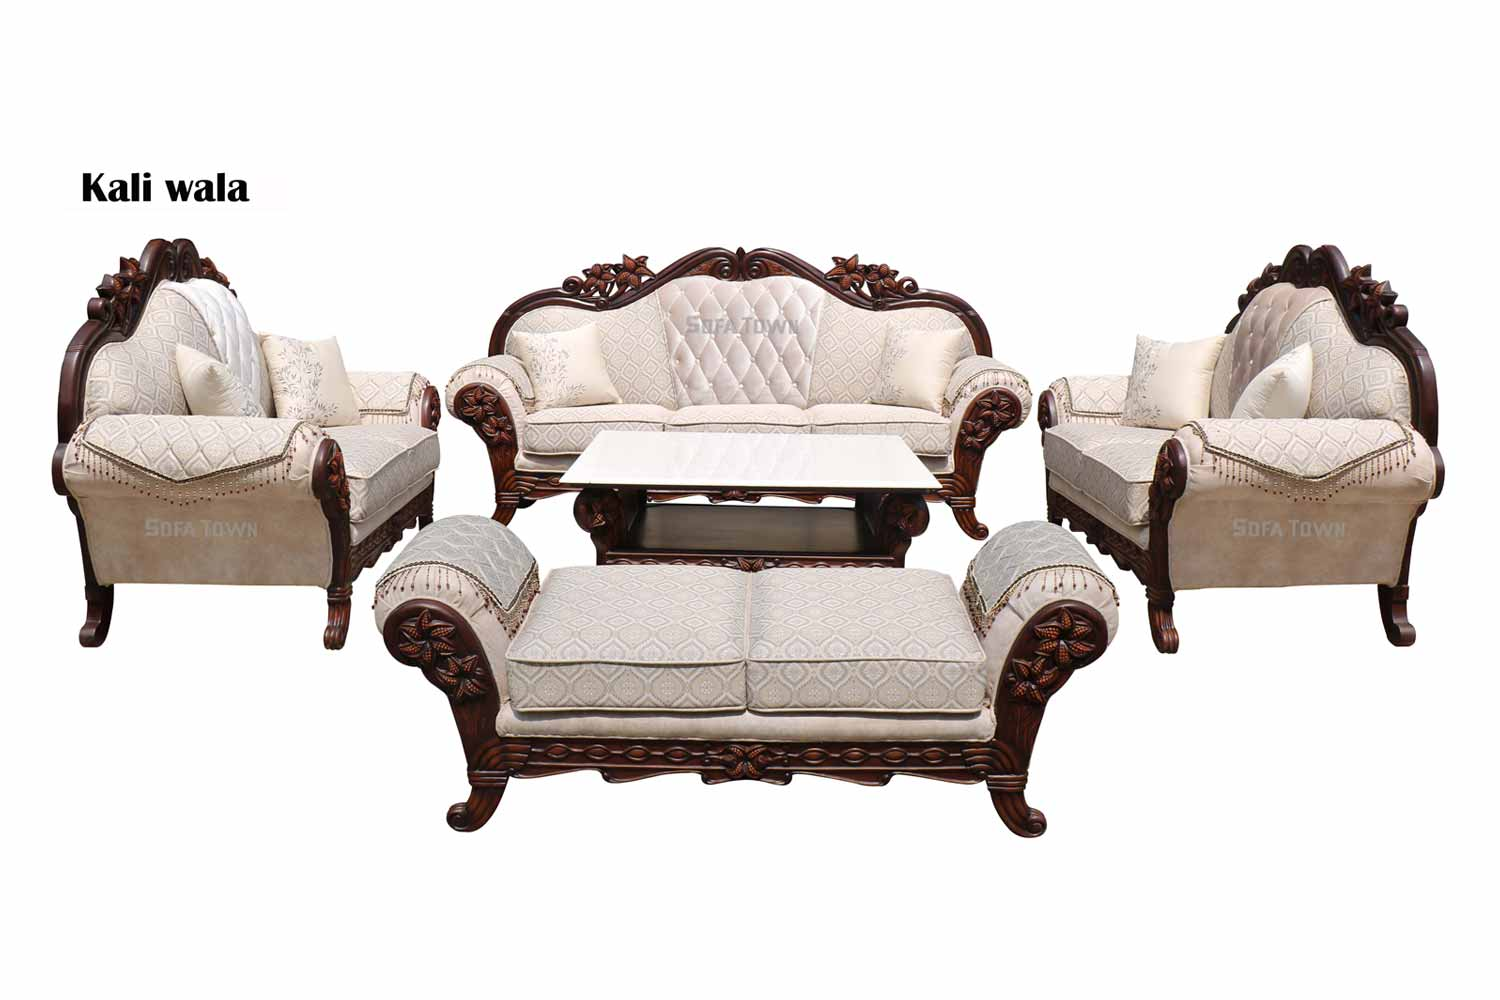 Types Of Sofa For Living Room Different Types Of Materials Used For Making Living Room Furniture